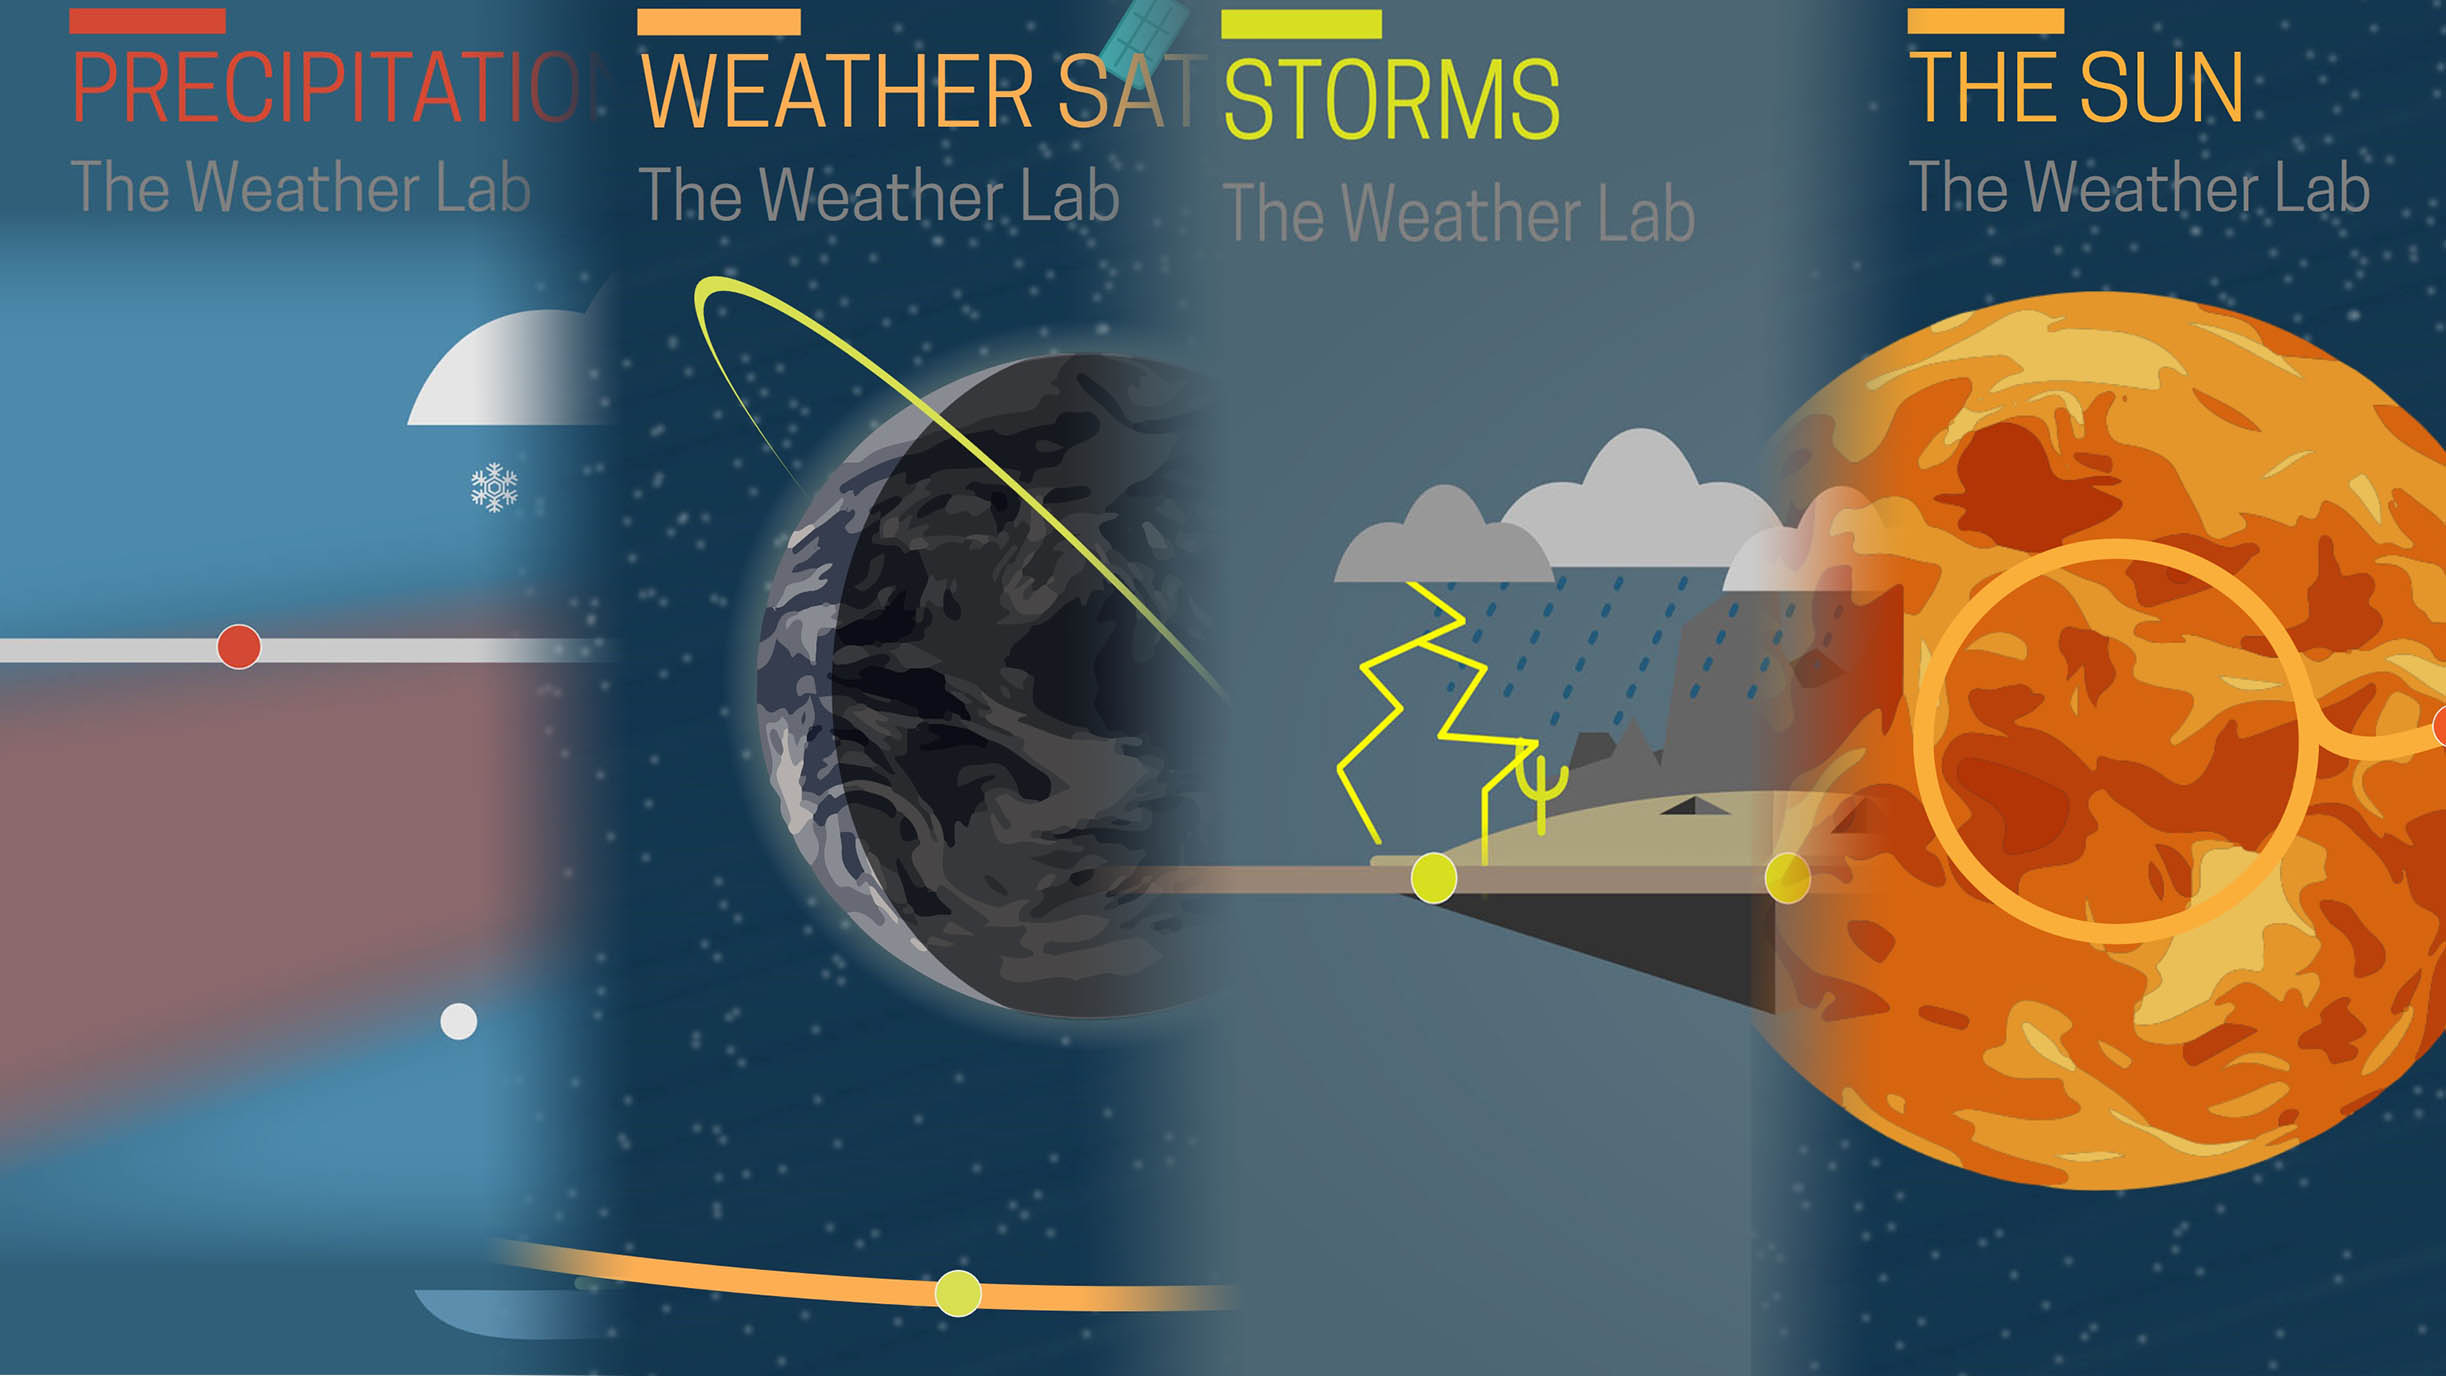 The Weather Lab